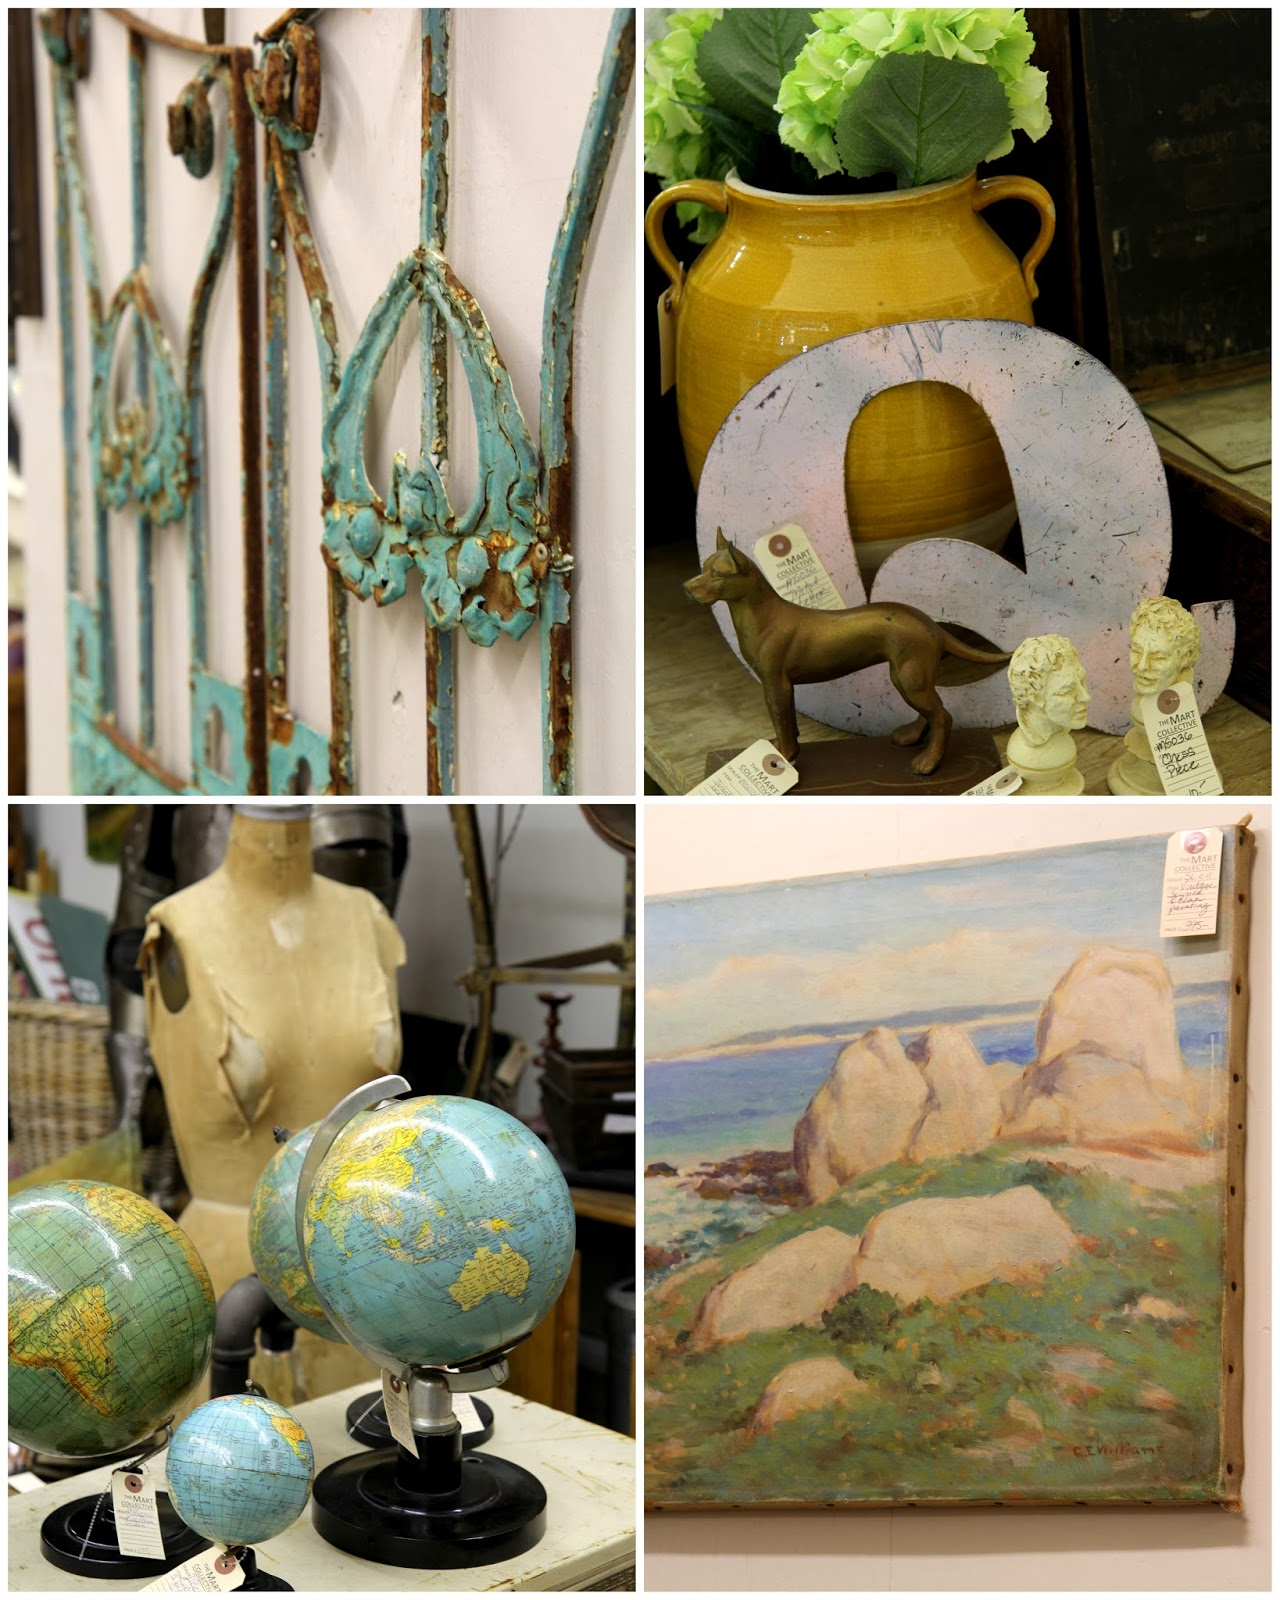 Antique gate, school globes, and paintings